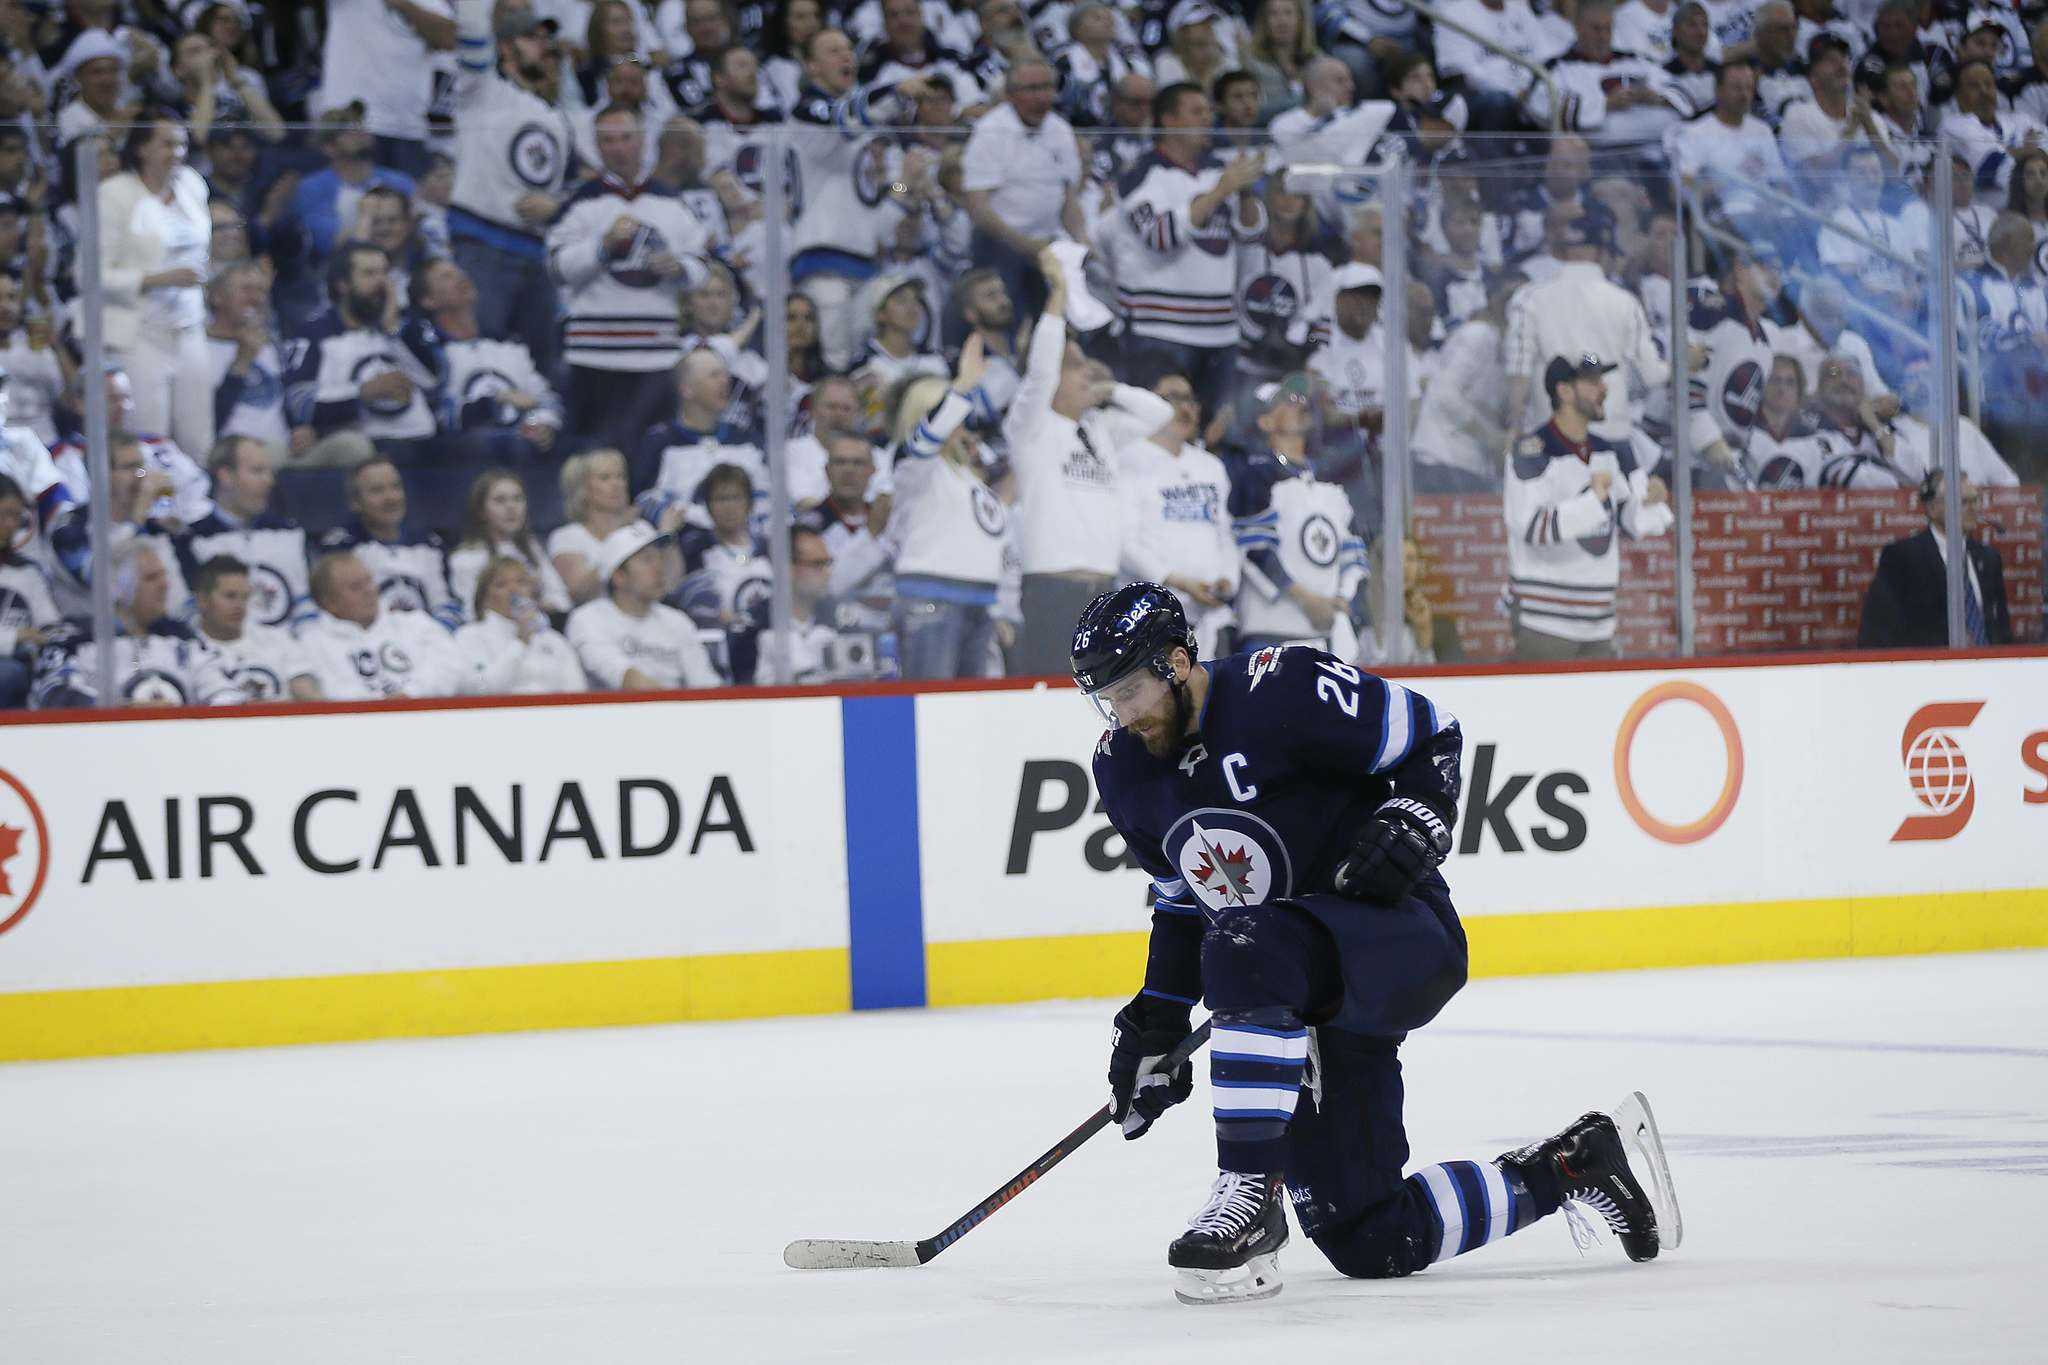 <p>Winnipeg Jets&#39; Blake Wheeler takes knee after getting tripped by Vegas Golden Knights&rsquo; Brayden McNabb during second period of Game 2 Monday.</p>